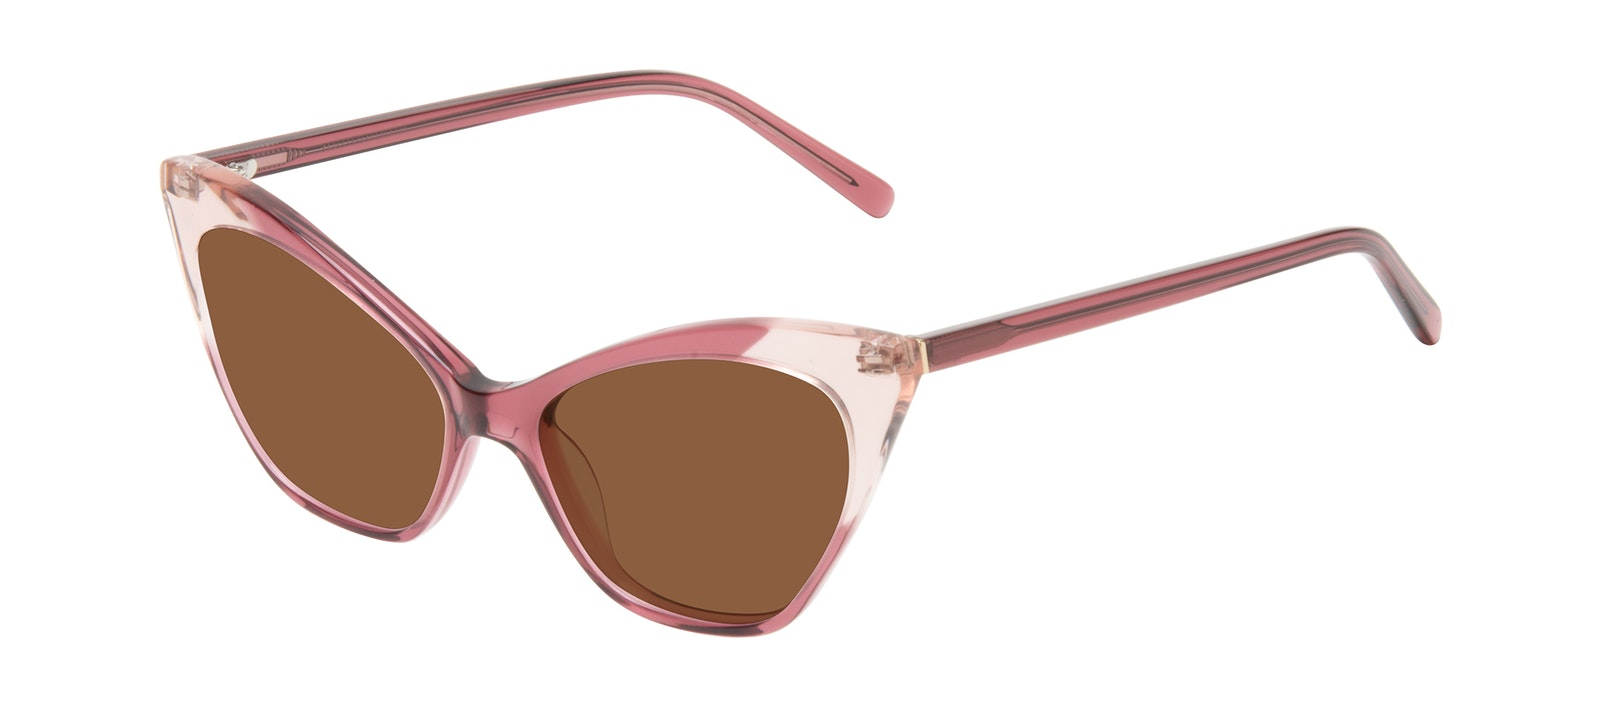 Affordable Fashion Glasses Cat Eye Sunglasses Women Gossip Orchid Pink Tilt